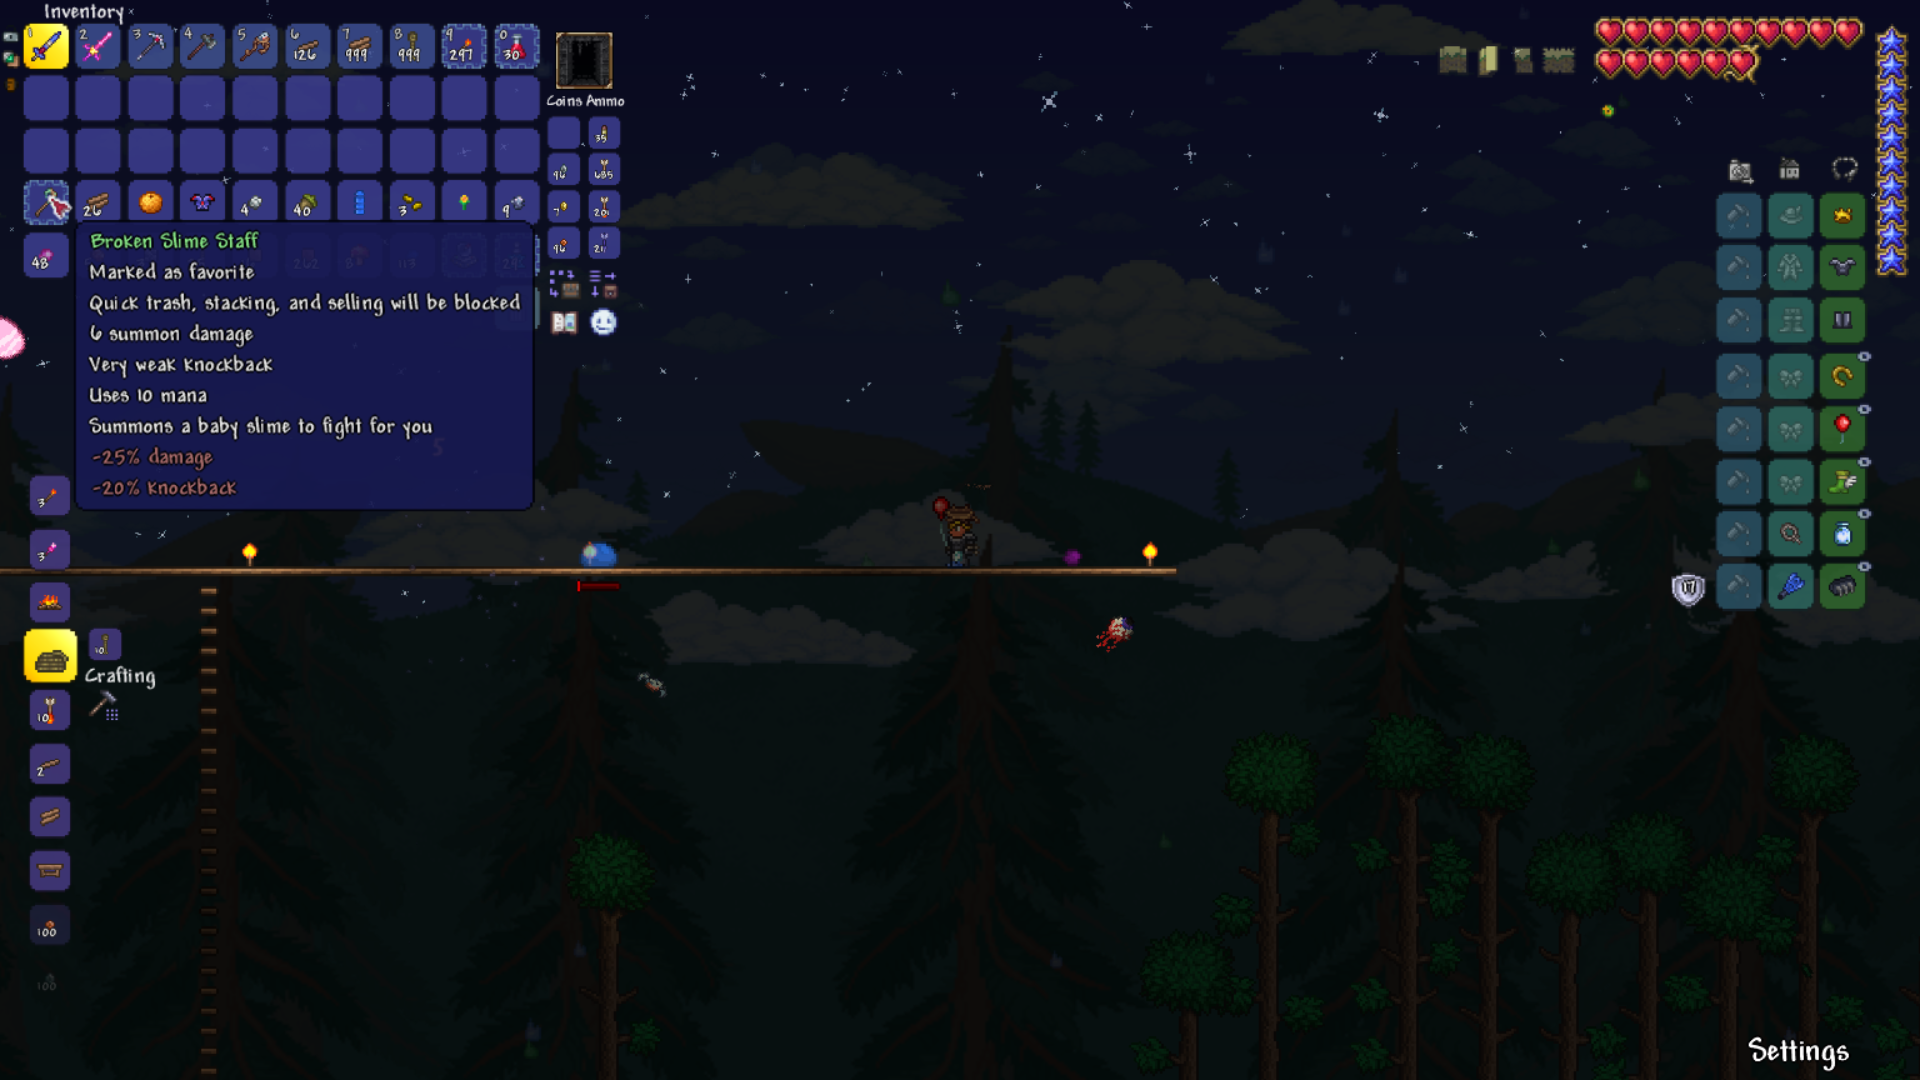 Terraria_ Small Blocks, Not for Children Under the Age of 5 22_05_2020 13_35_08.png